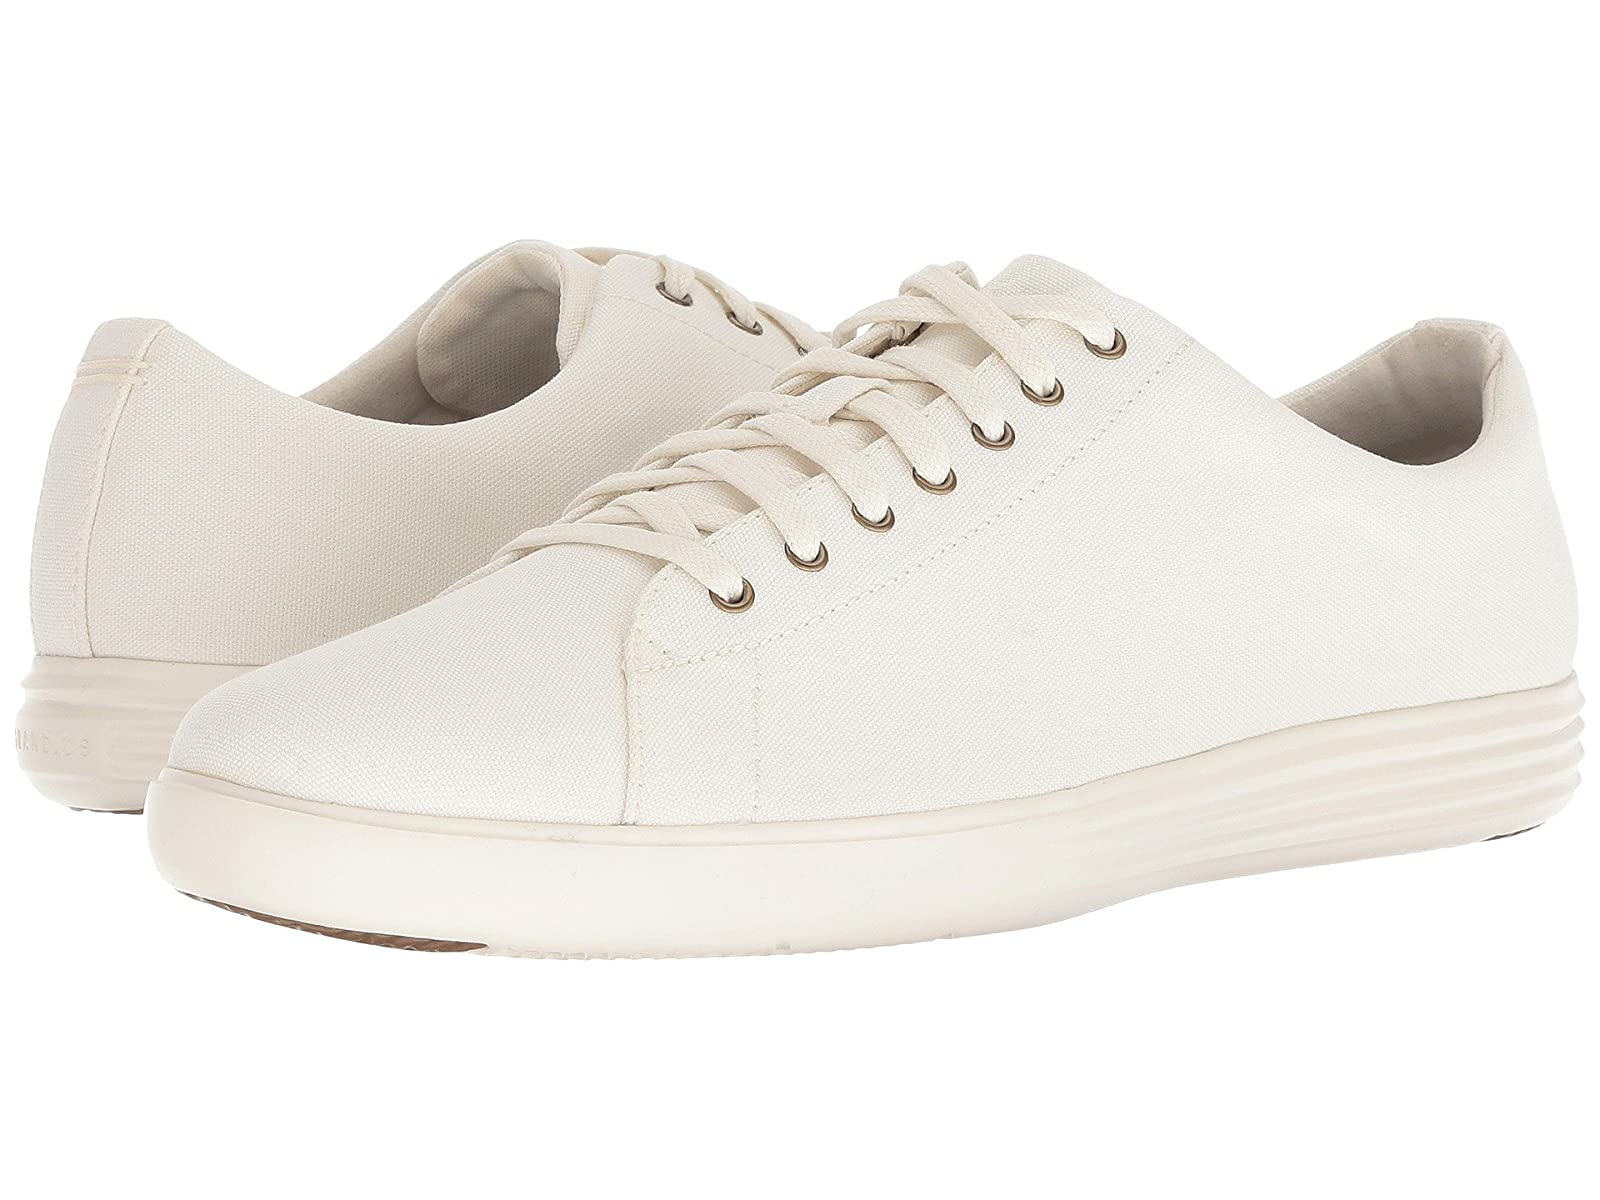 Cole Haan Grand Crosscourt SneakerCheap and distinctive eye-catching shoes